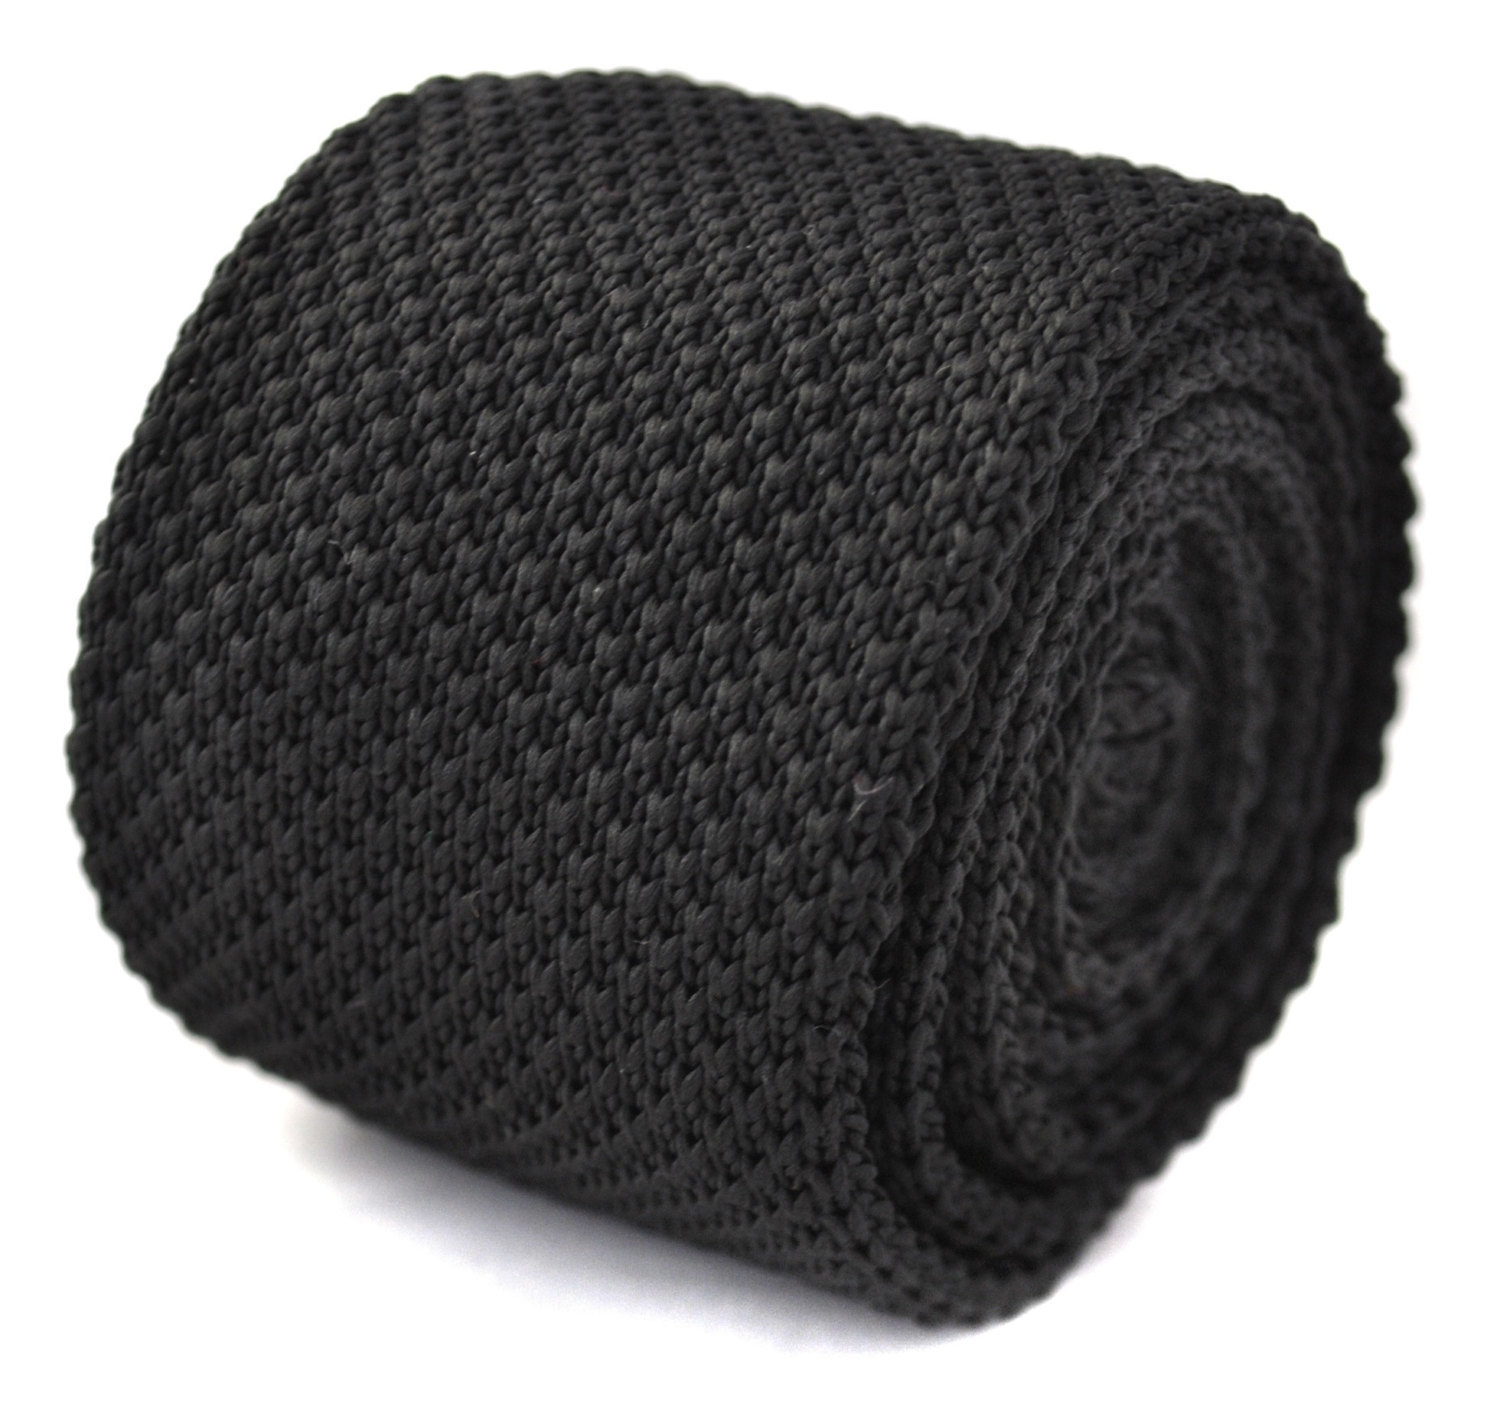 plain black skinny knitted tie with flat end by Frederick Thomas FT260